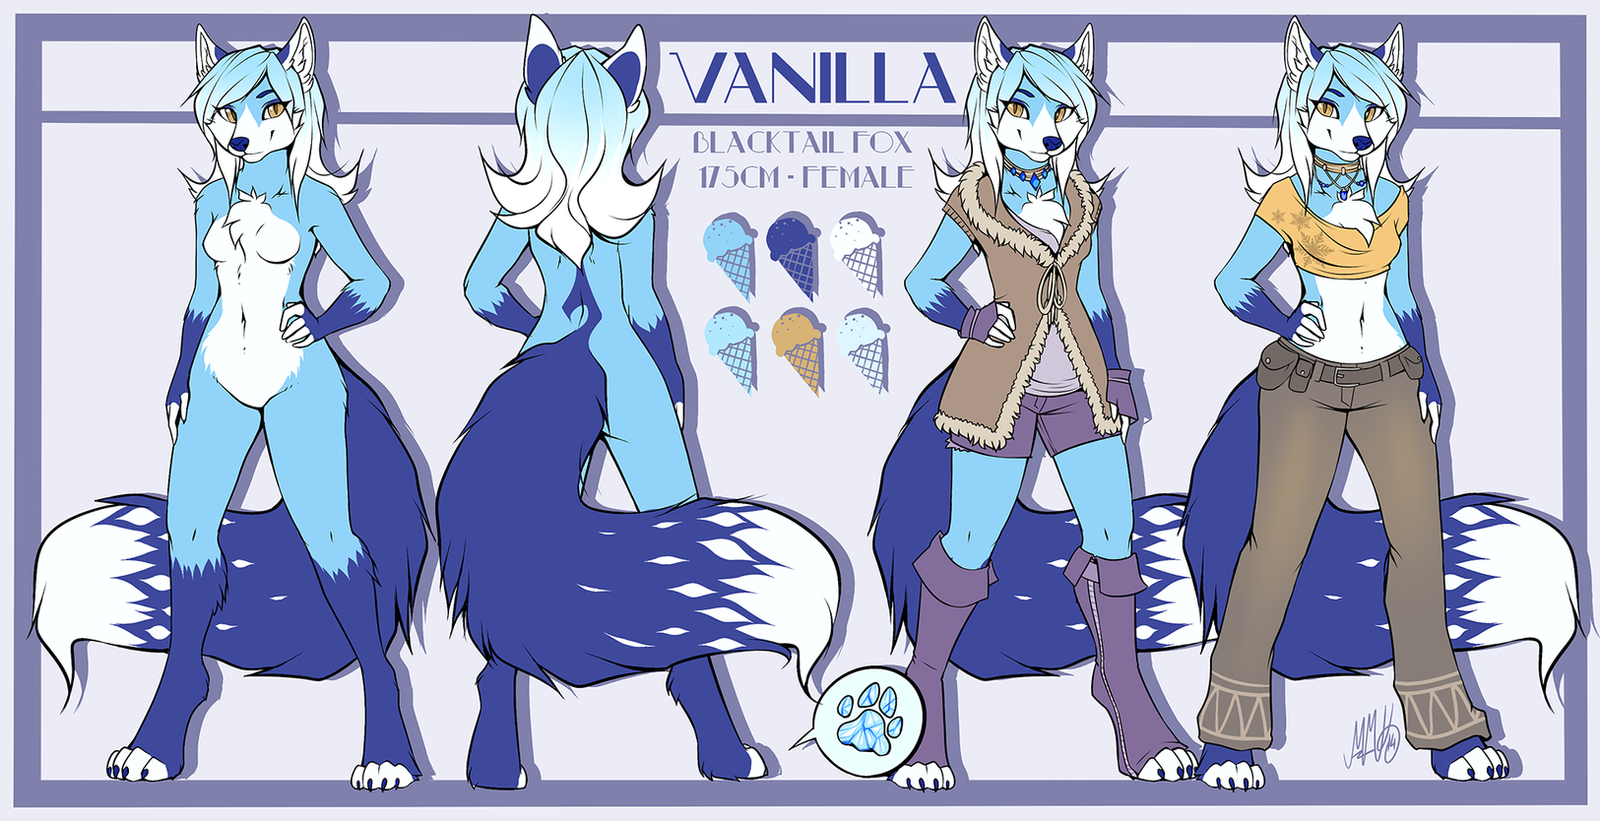 Vanilla Reference by Neotheta